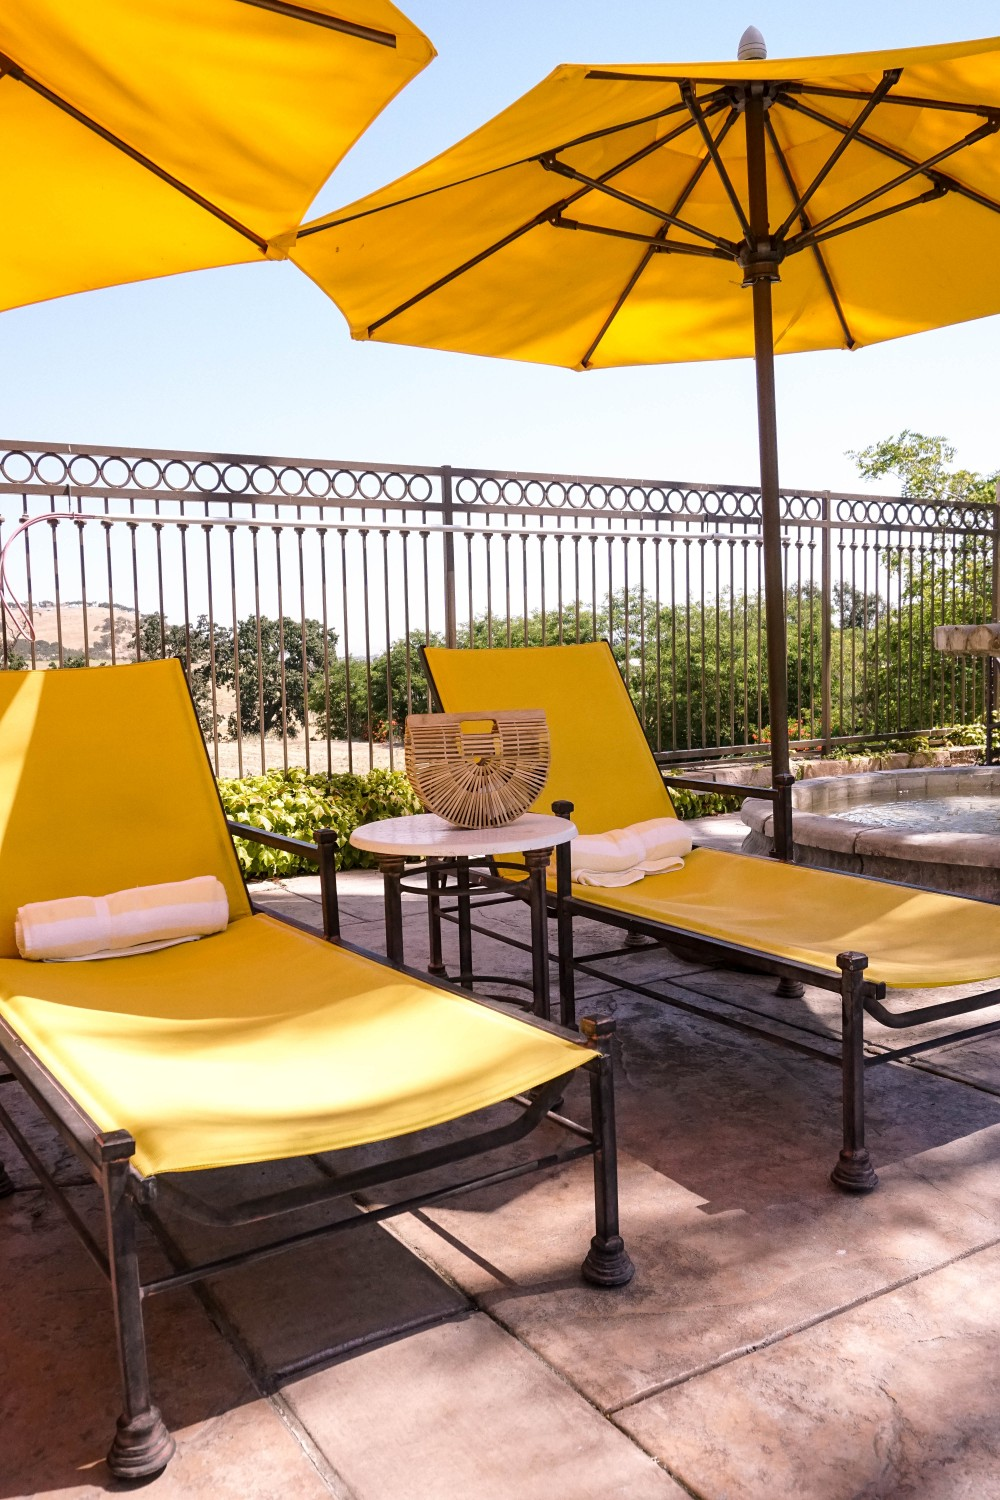 Mini Vacation in Paso Robles-Visit Paso Robles-Wine Country-La Bellasera Hotel and Suites-Bijou on the Park-Have Need Want Travels 6